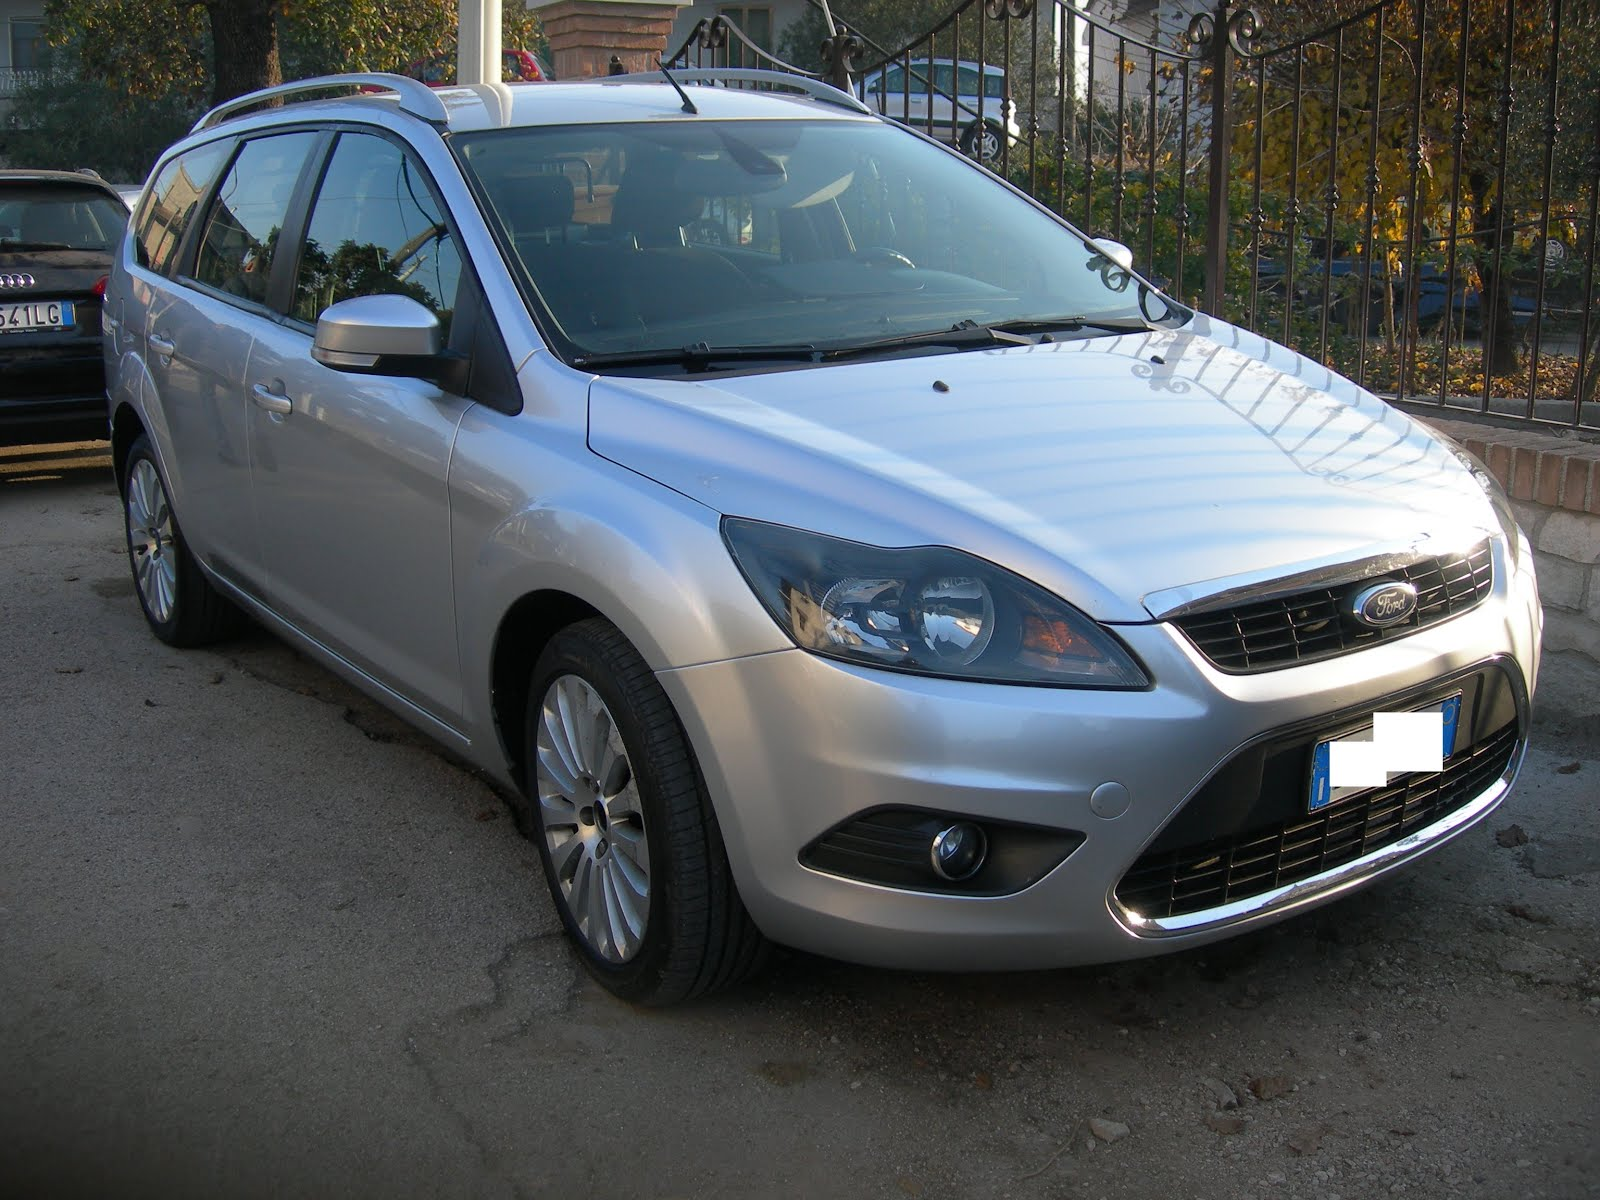 Ford Focus 1.6 Tdci 90 CV Anno 2009 Mod:Autoc+tr.pers. 130.000km accessori full optional